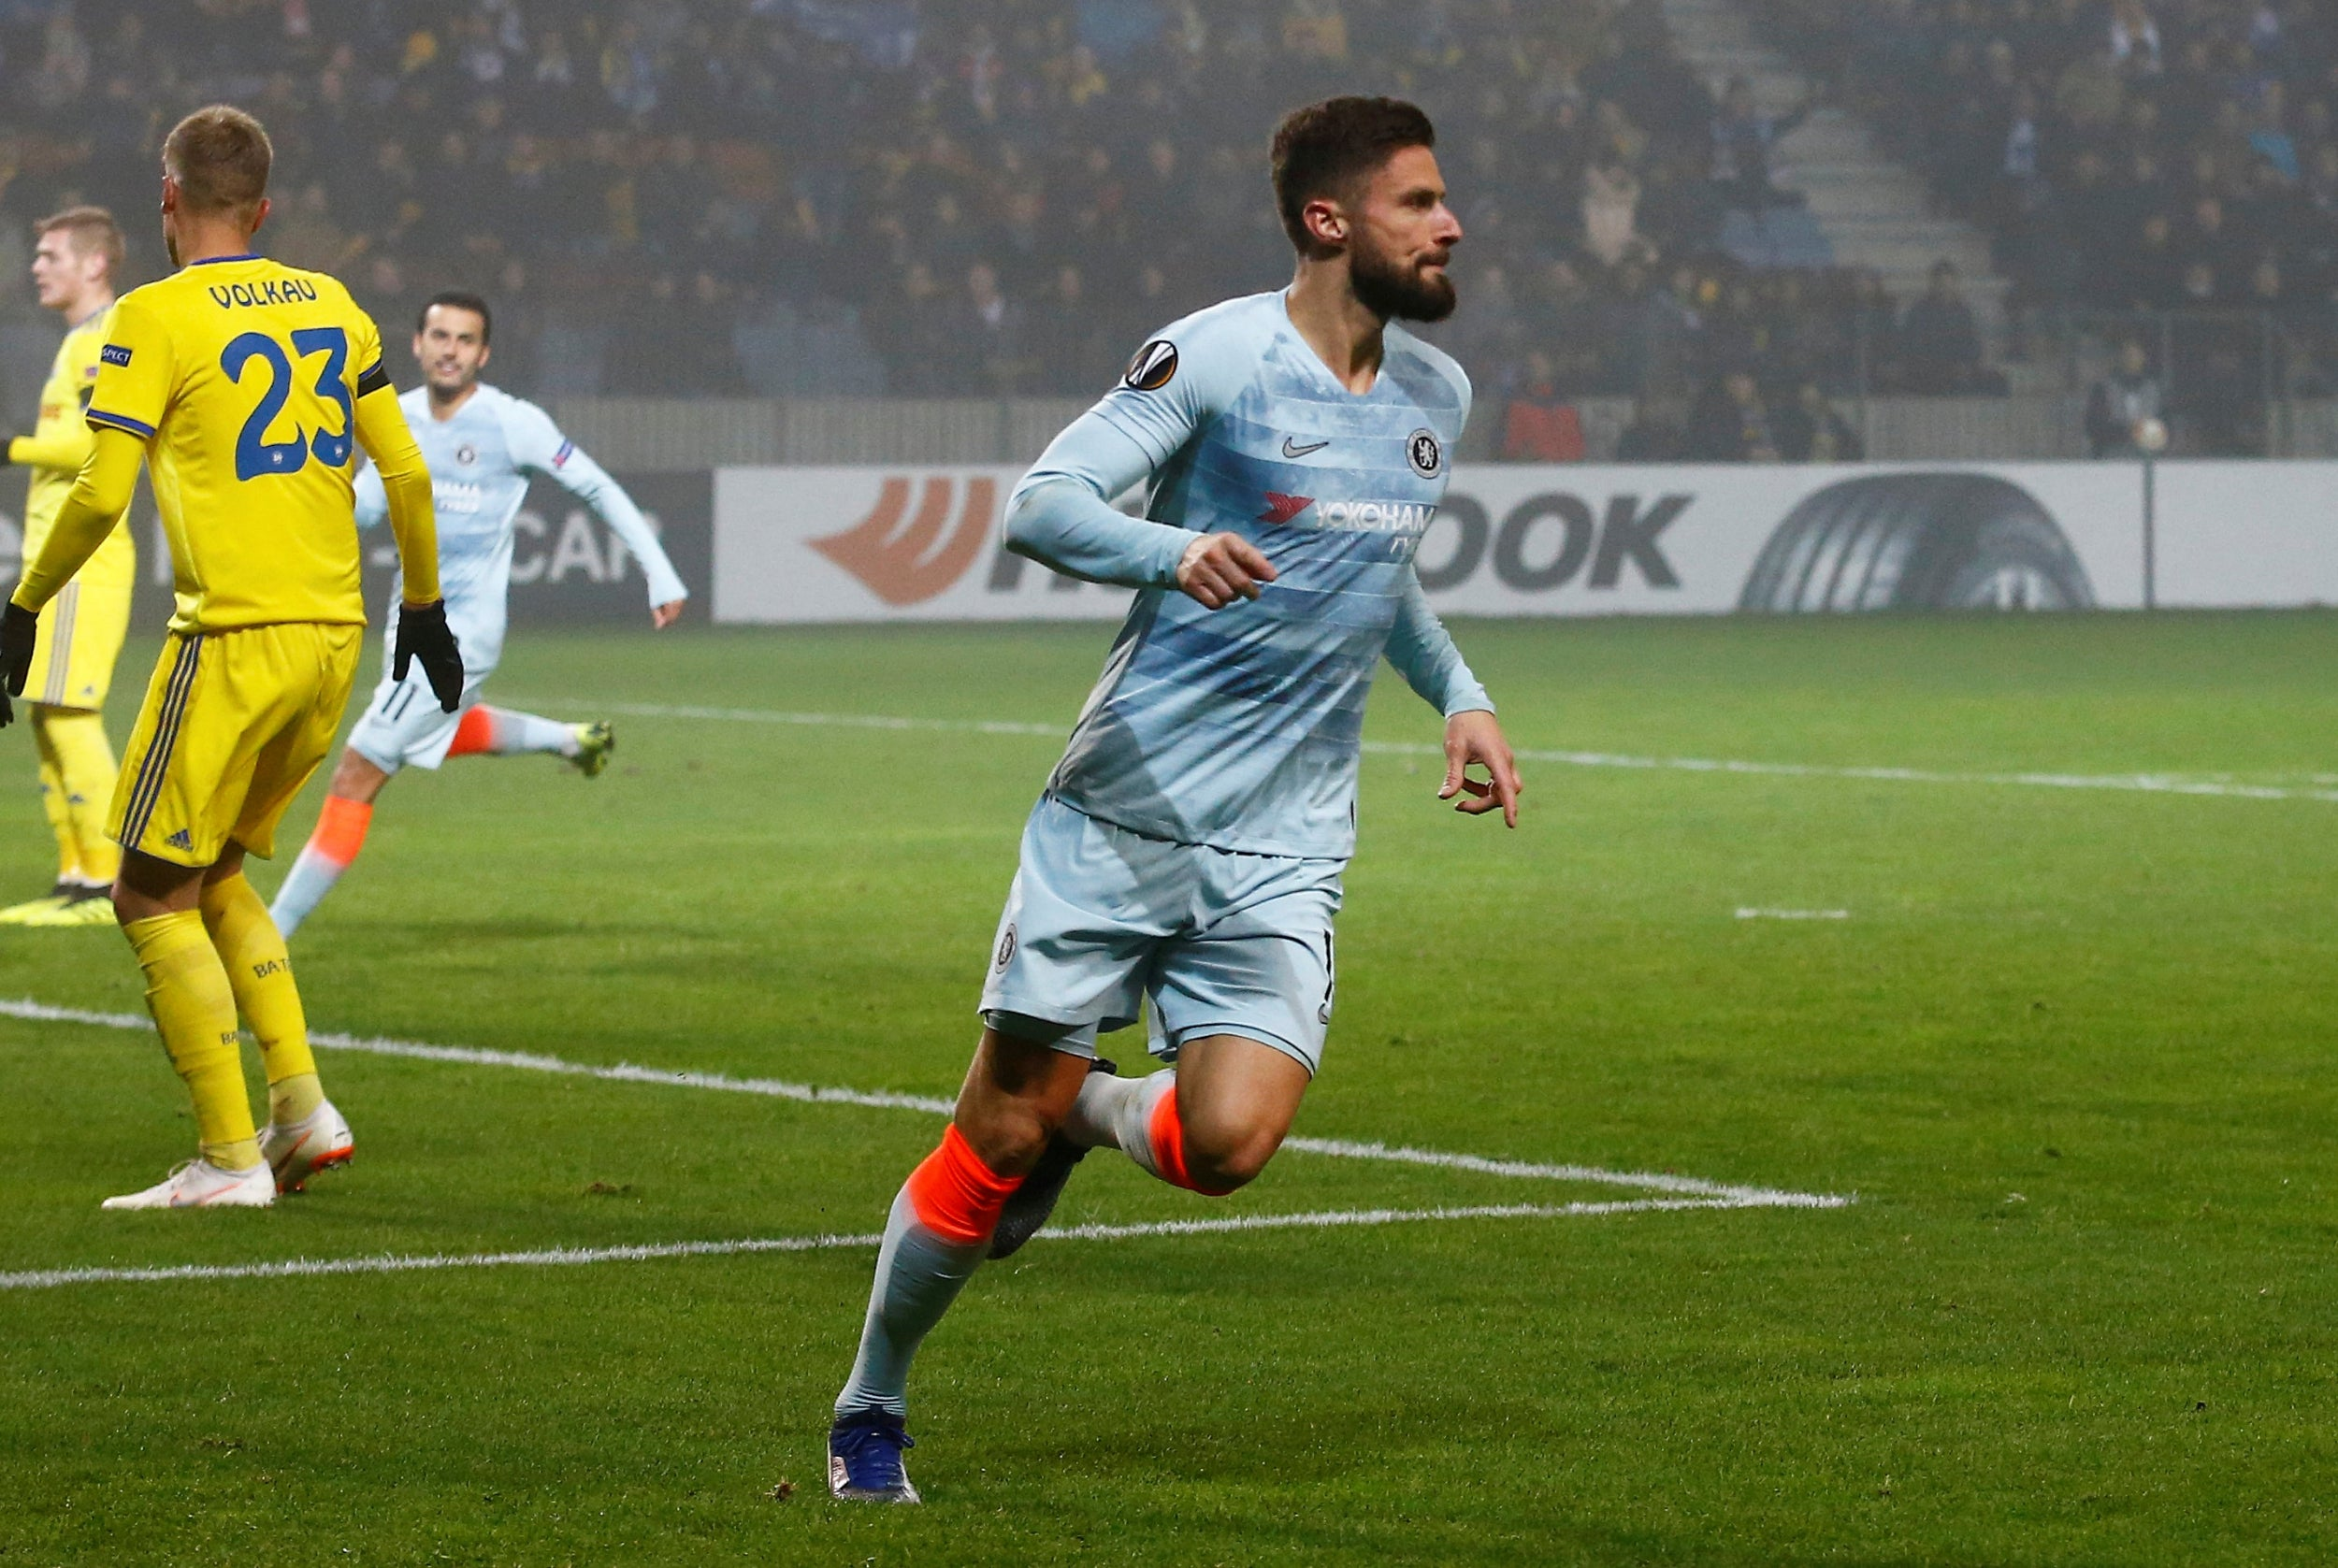 BATE Borisov vs Chelsea: Olivier Giroud ends goal drought to fire Blues to Europa League knockout round